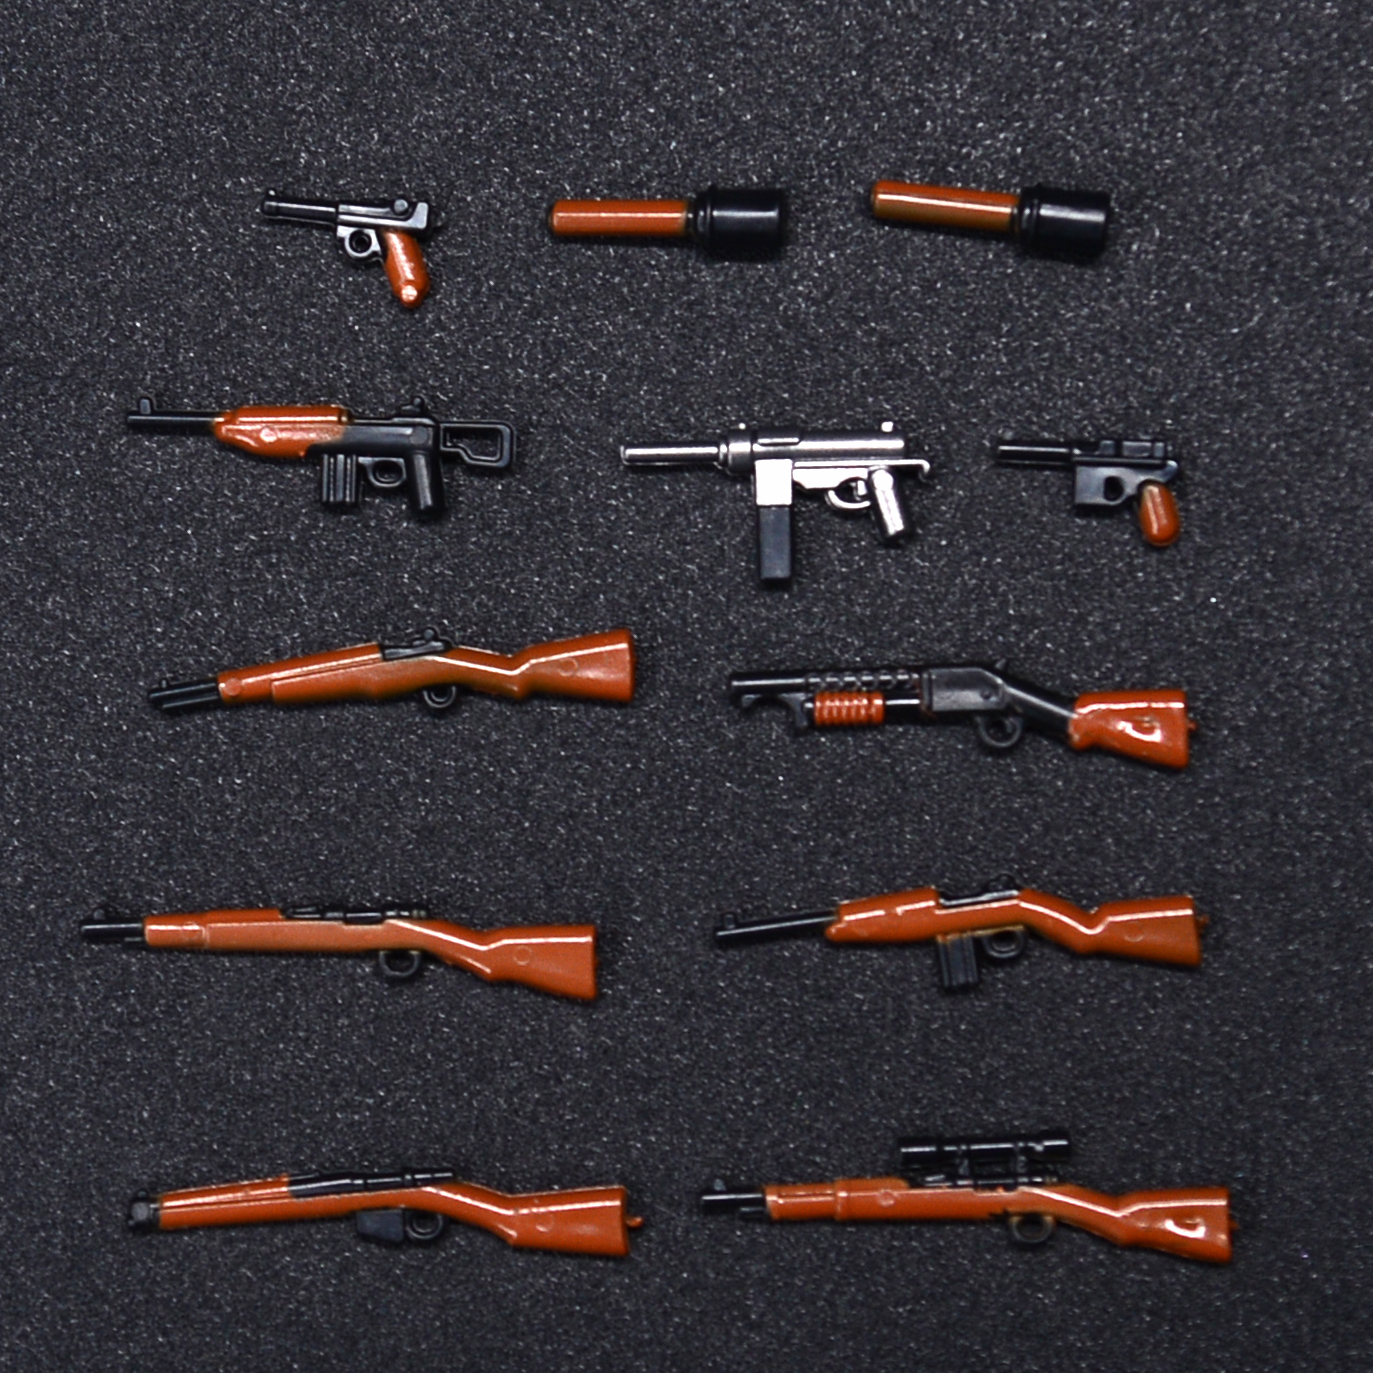 moc Military World War 2 weapon Army soldiers City SWAT Building Blocks Toys for children